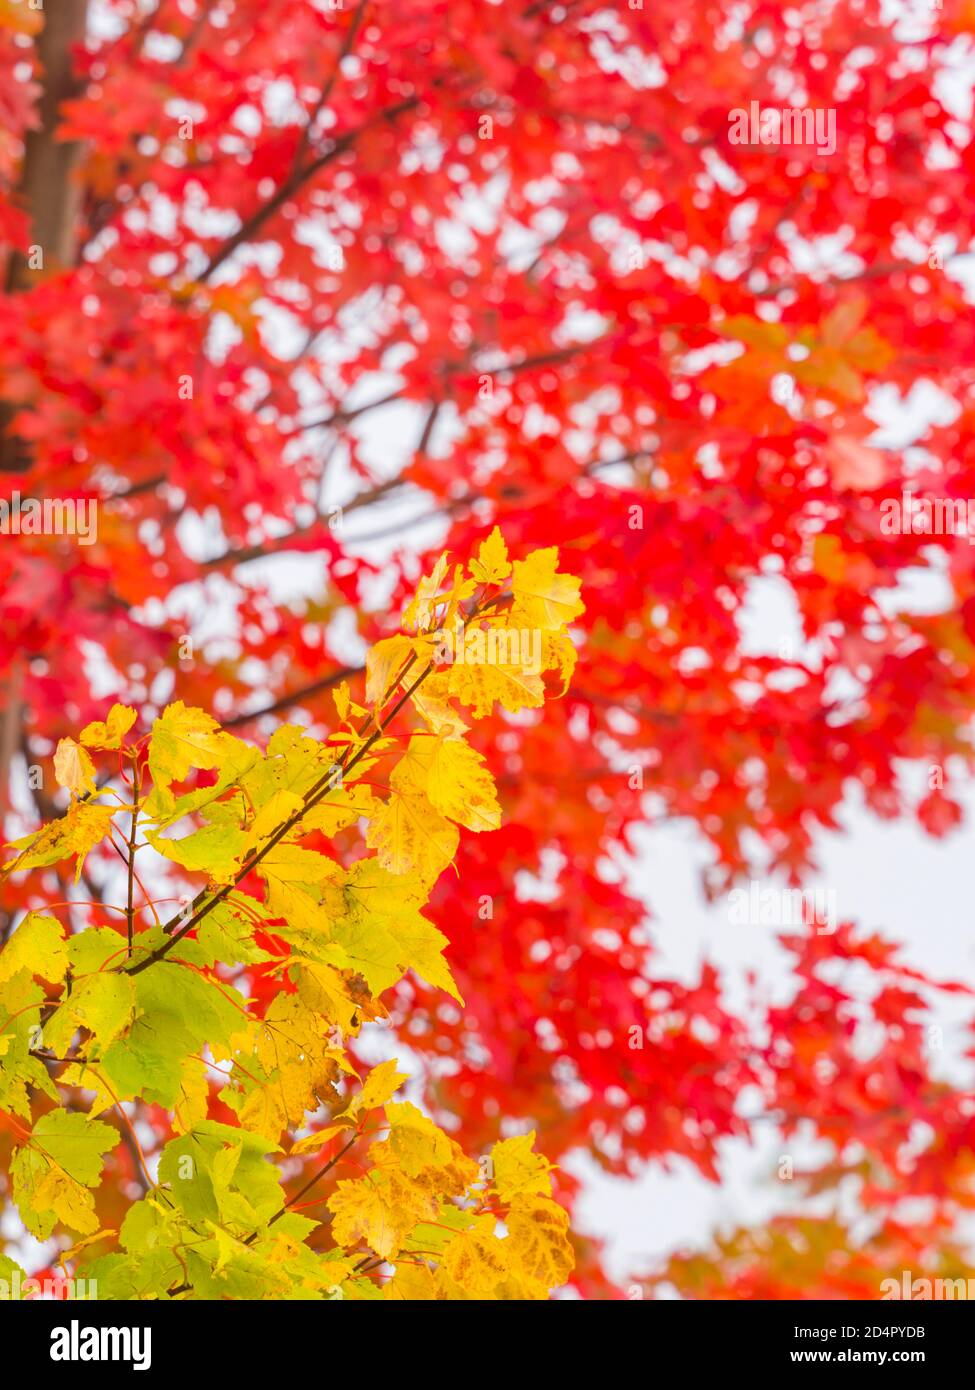 Intensive Red Green vivid color colored leaves Fall Autumn season seasonal trees tree branch branches nature natural environment Stock Photo